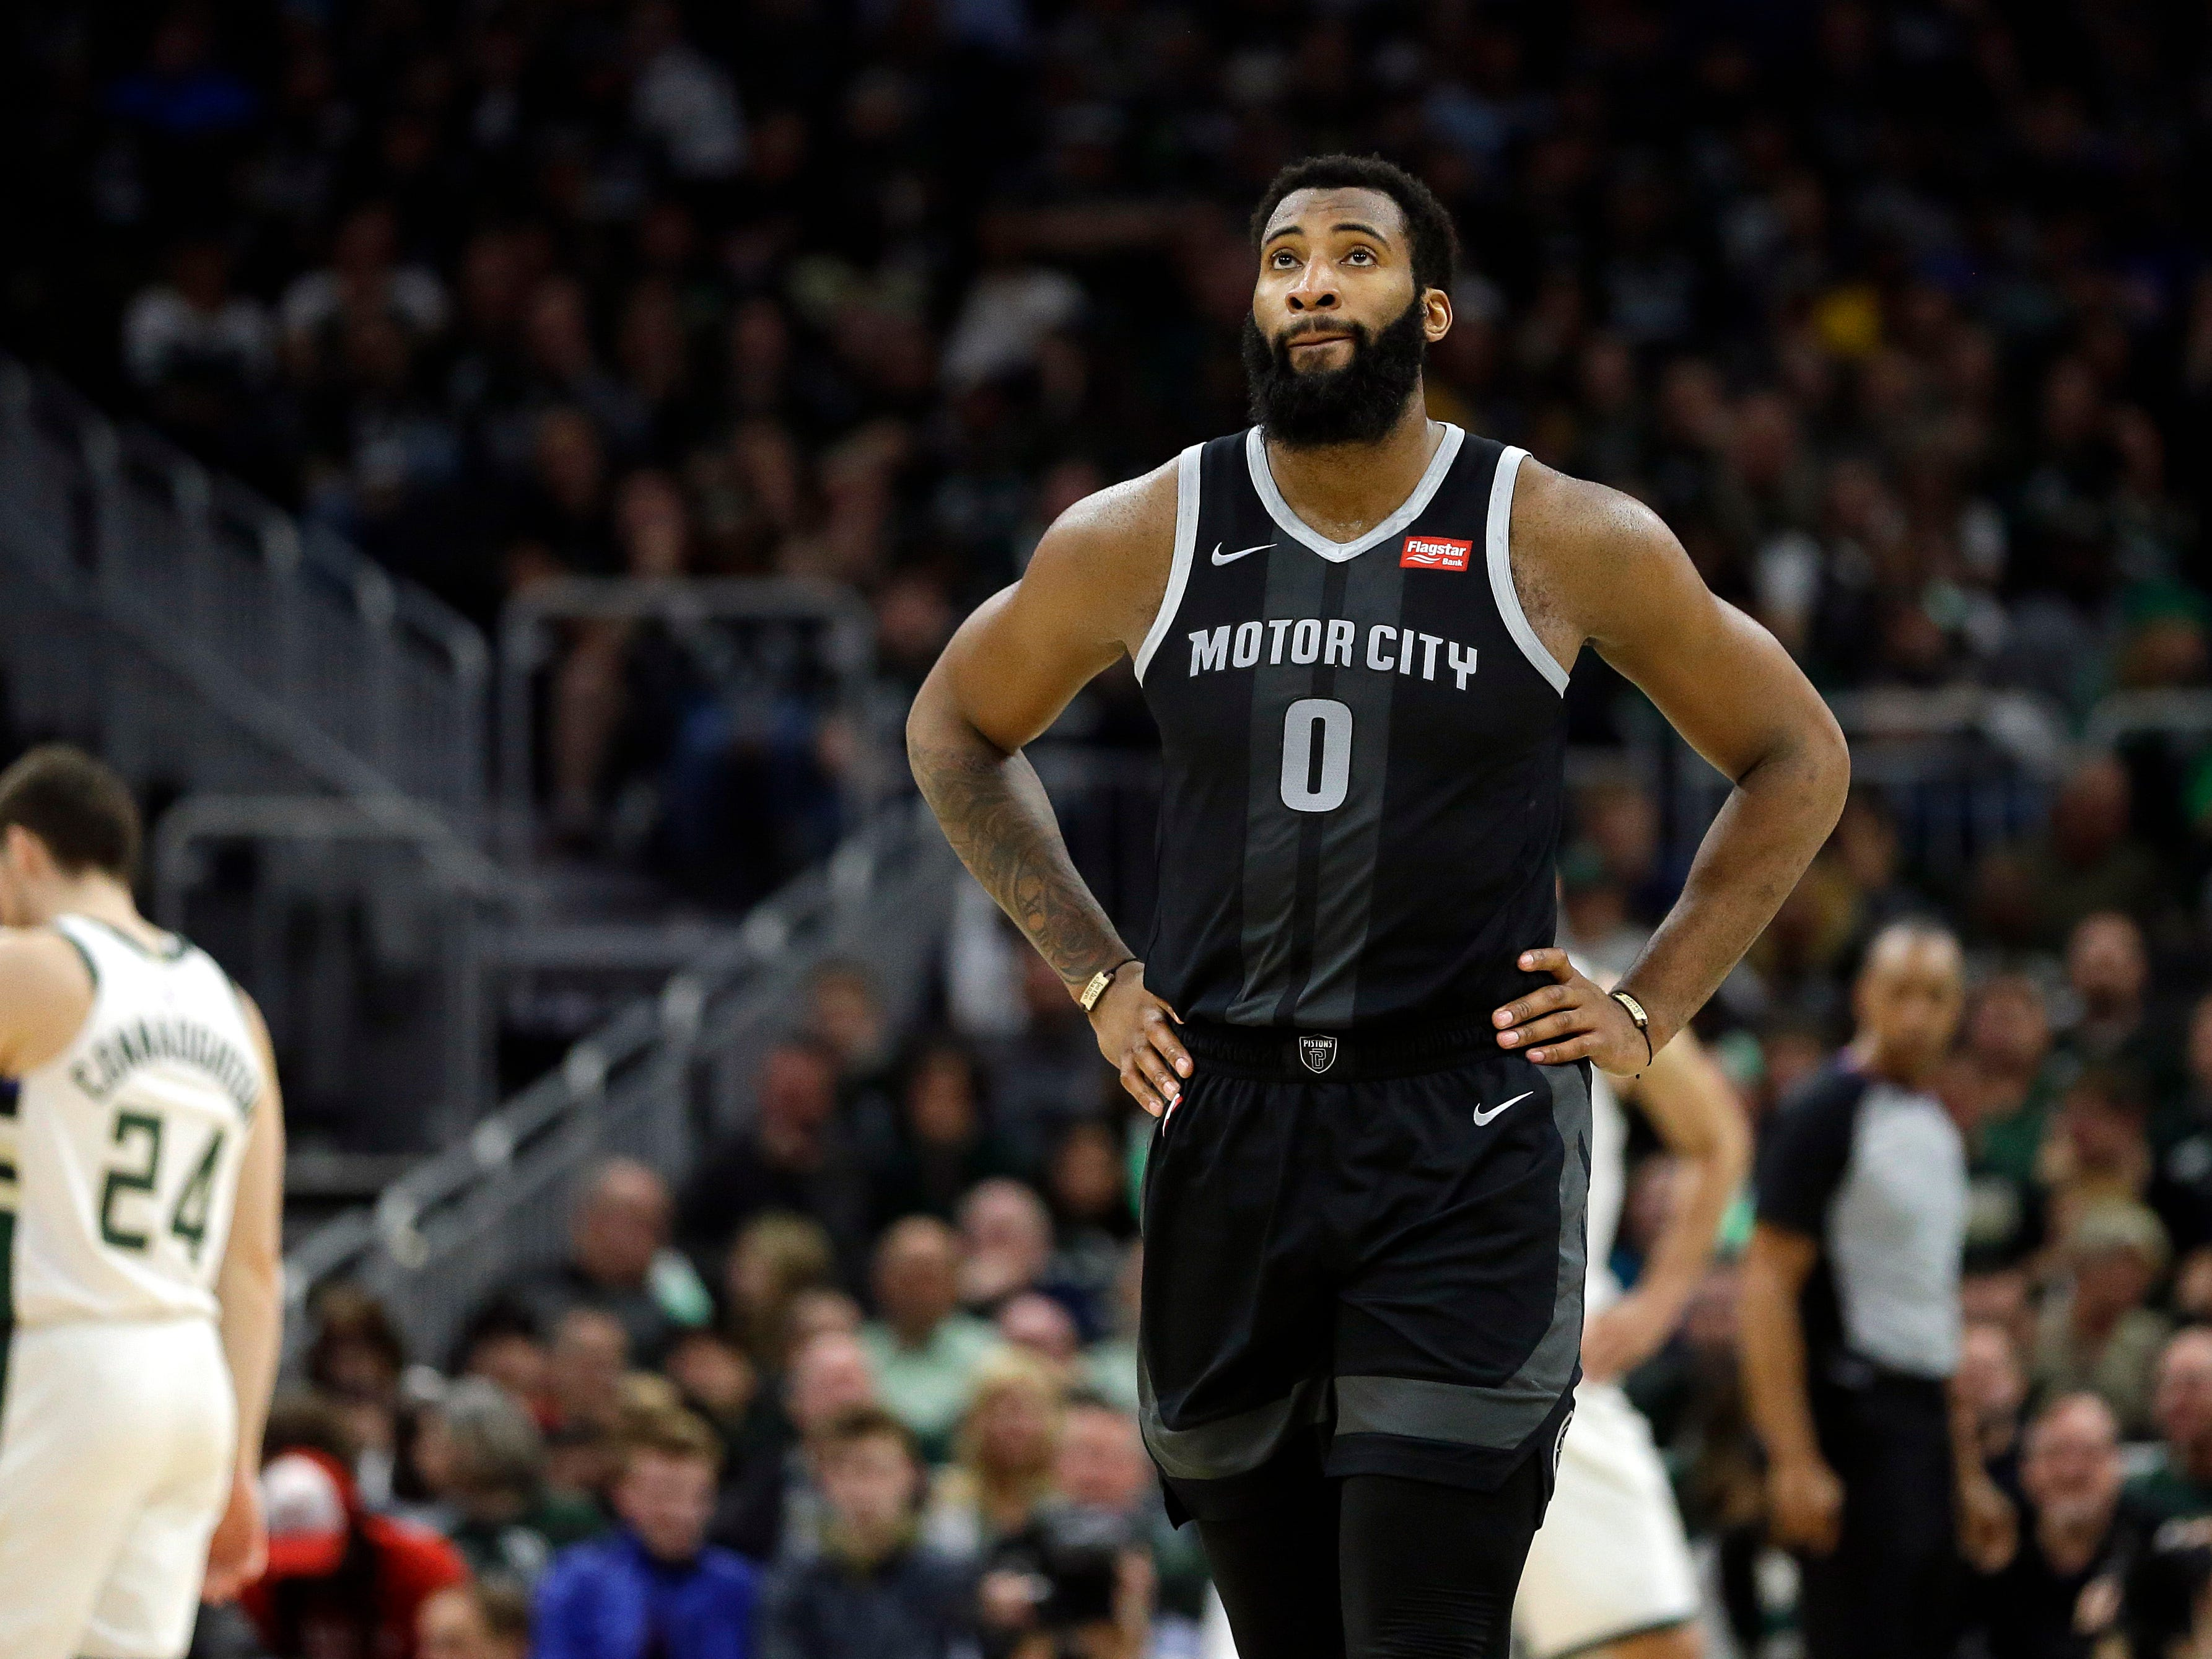 Detroit's Andre Drummond and the Pistons fall to the Milwaukee Bucks 120-99 in game 2 at the Fiserv Forum in Milwaukee, Wisconsin on April 17, 2019.